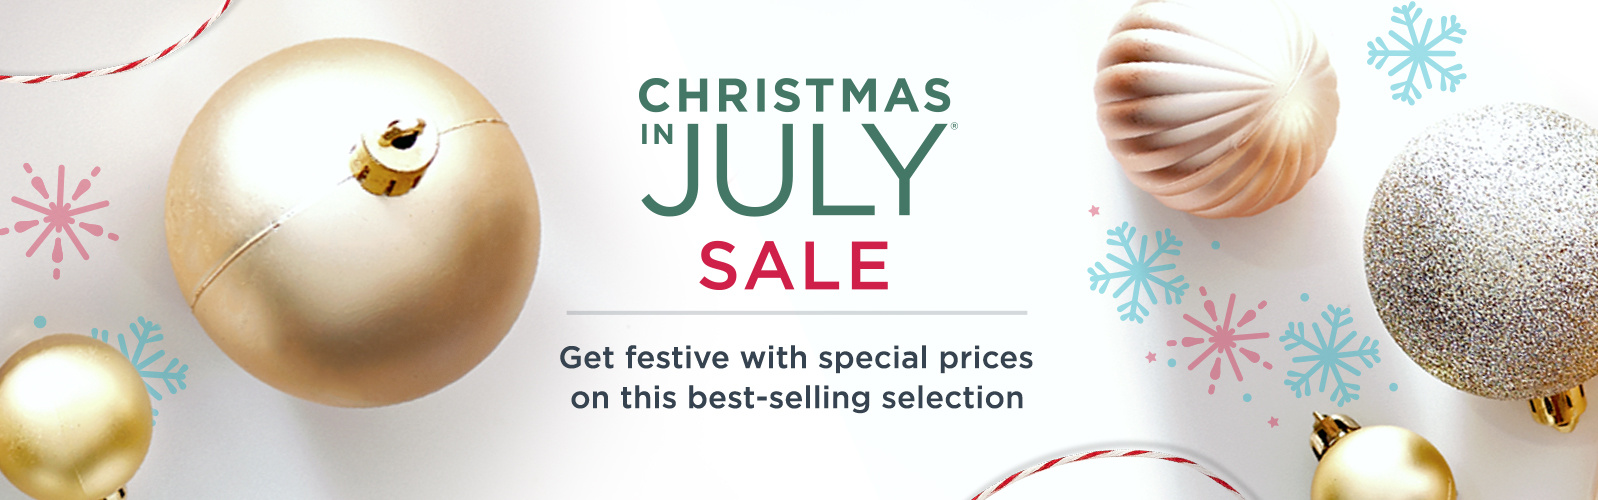 Christmas in July® Sale. Get festive with special prices on this best-selling selection.